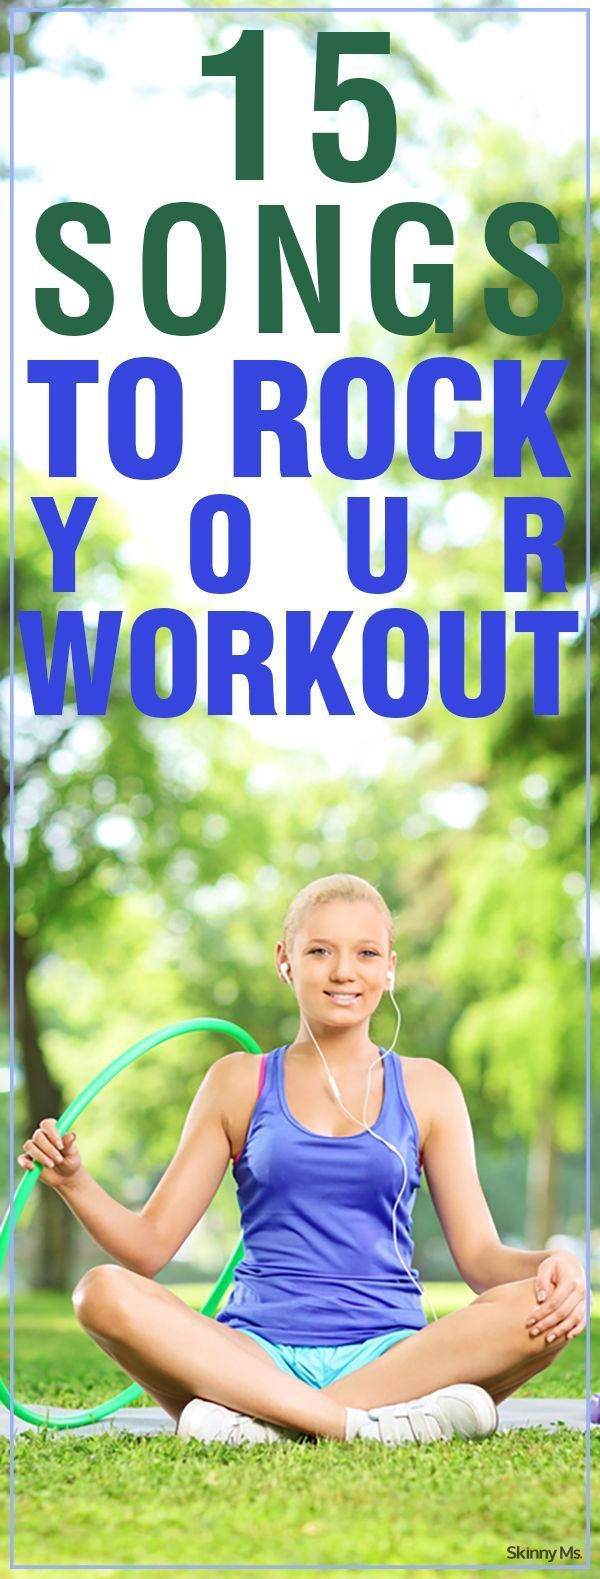 This workout playlist is meant to energize you and keep you at peak performance from beginning to end.